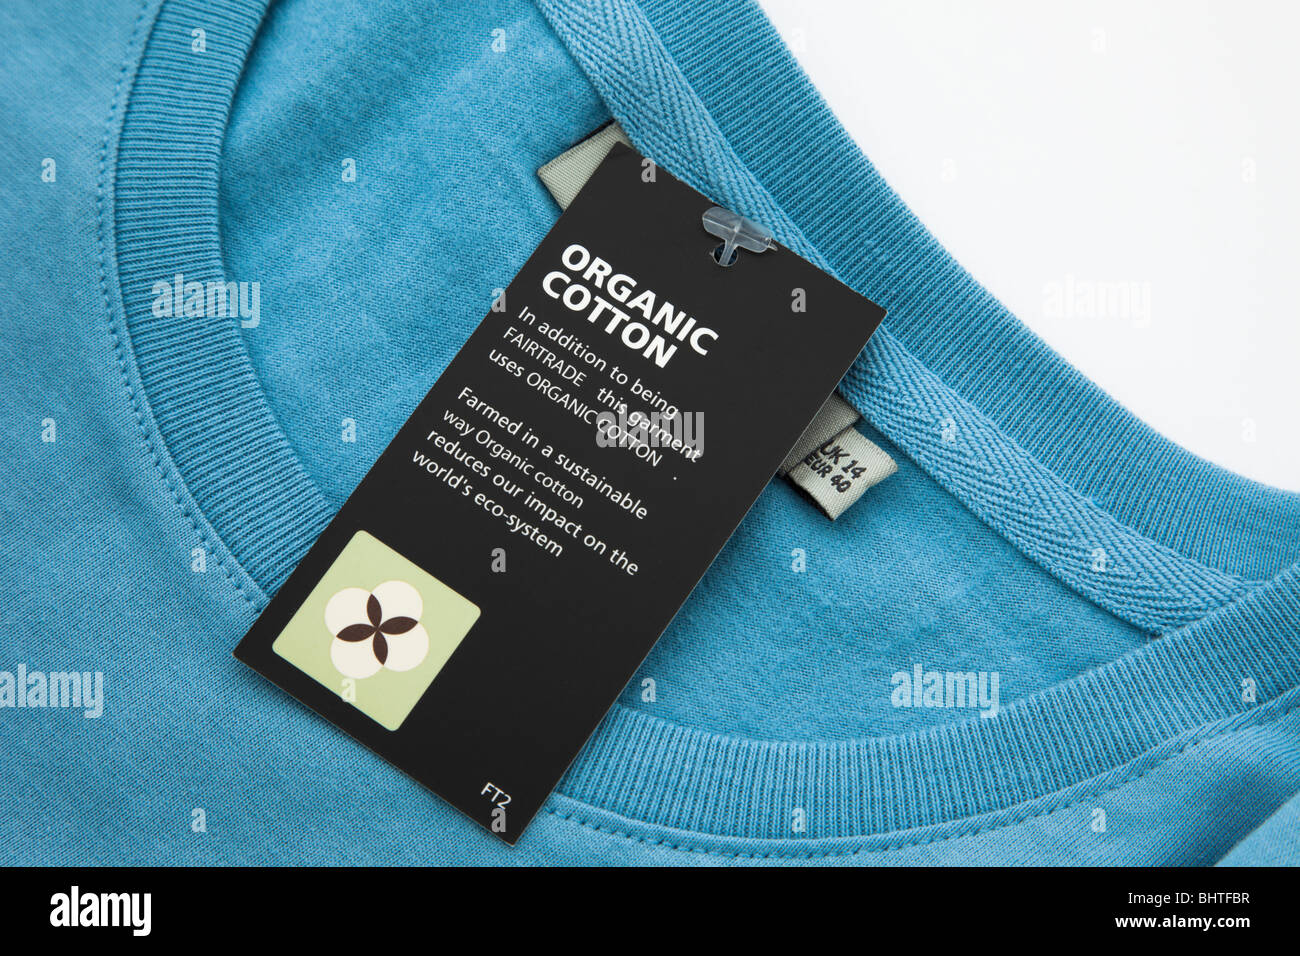 UK, Britain, Europe. Organic fairtrade cotton clothing label close-up - Stock Image